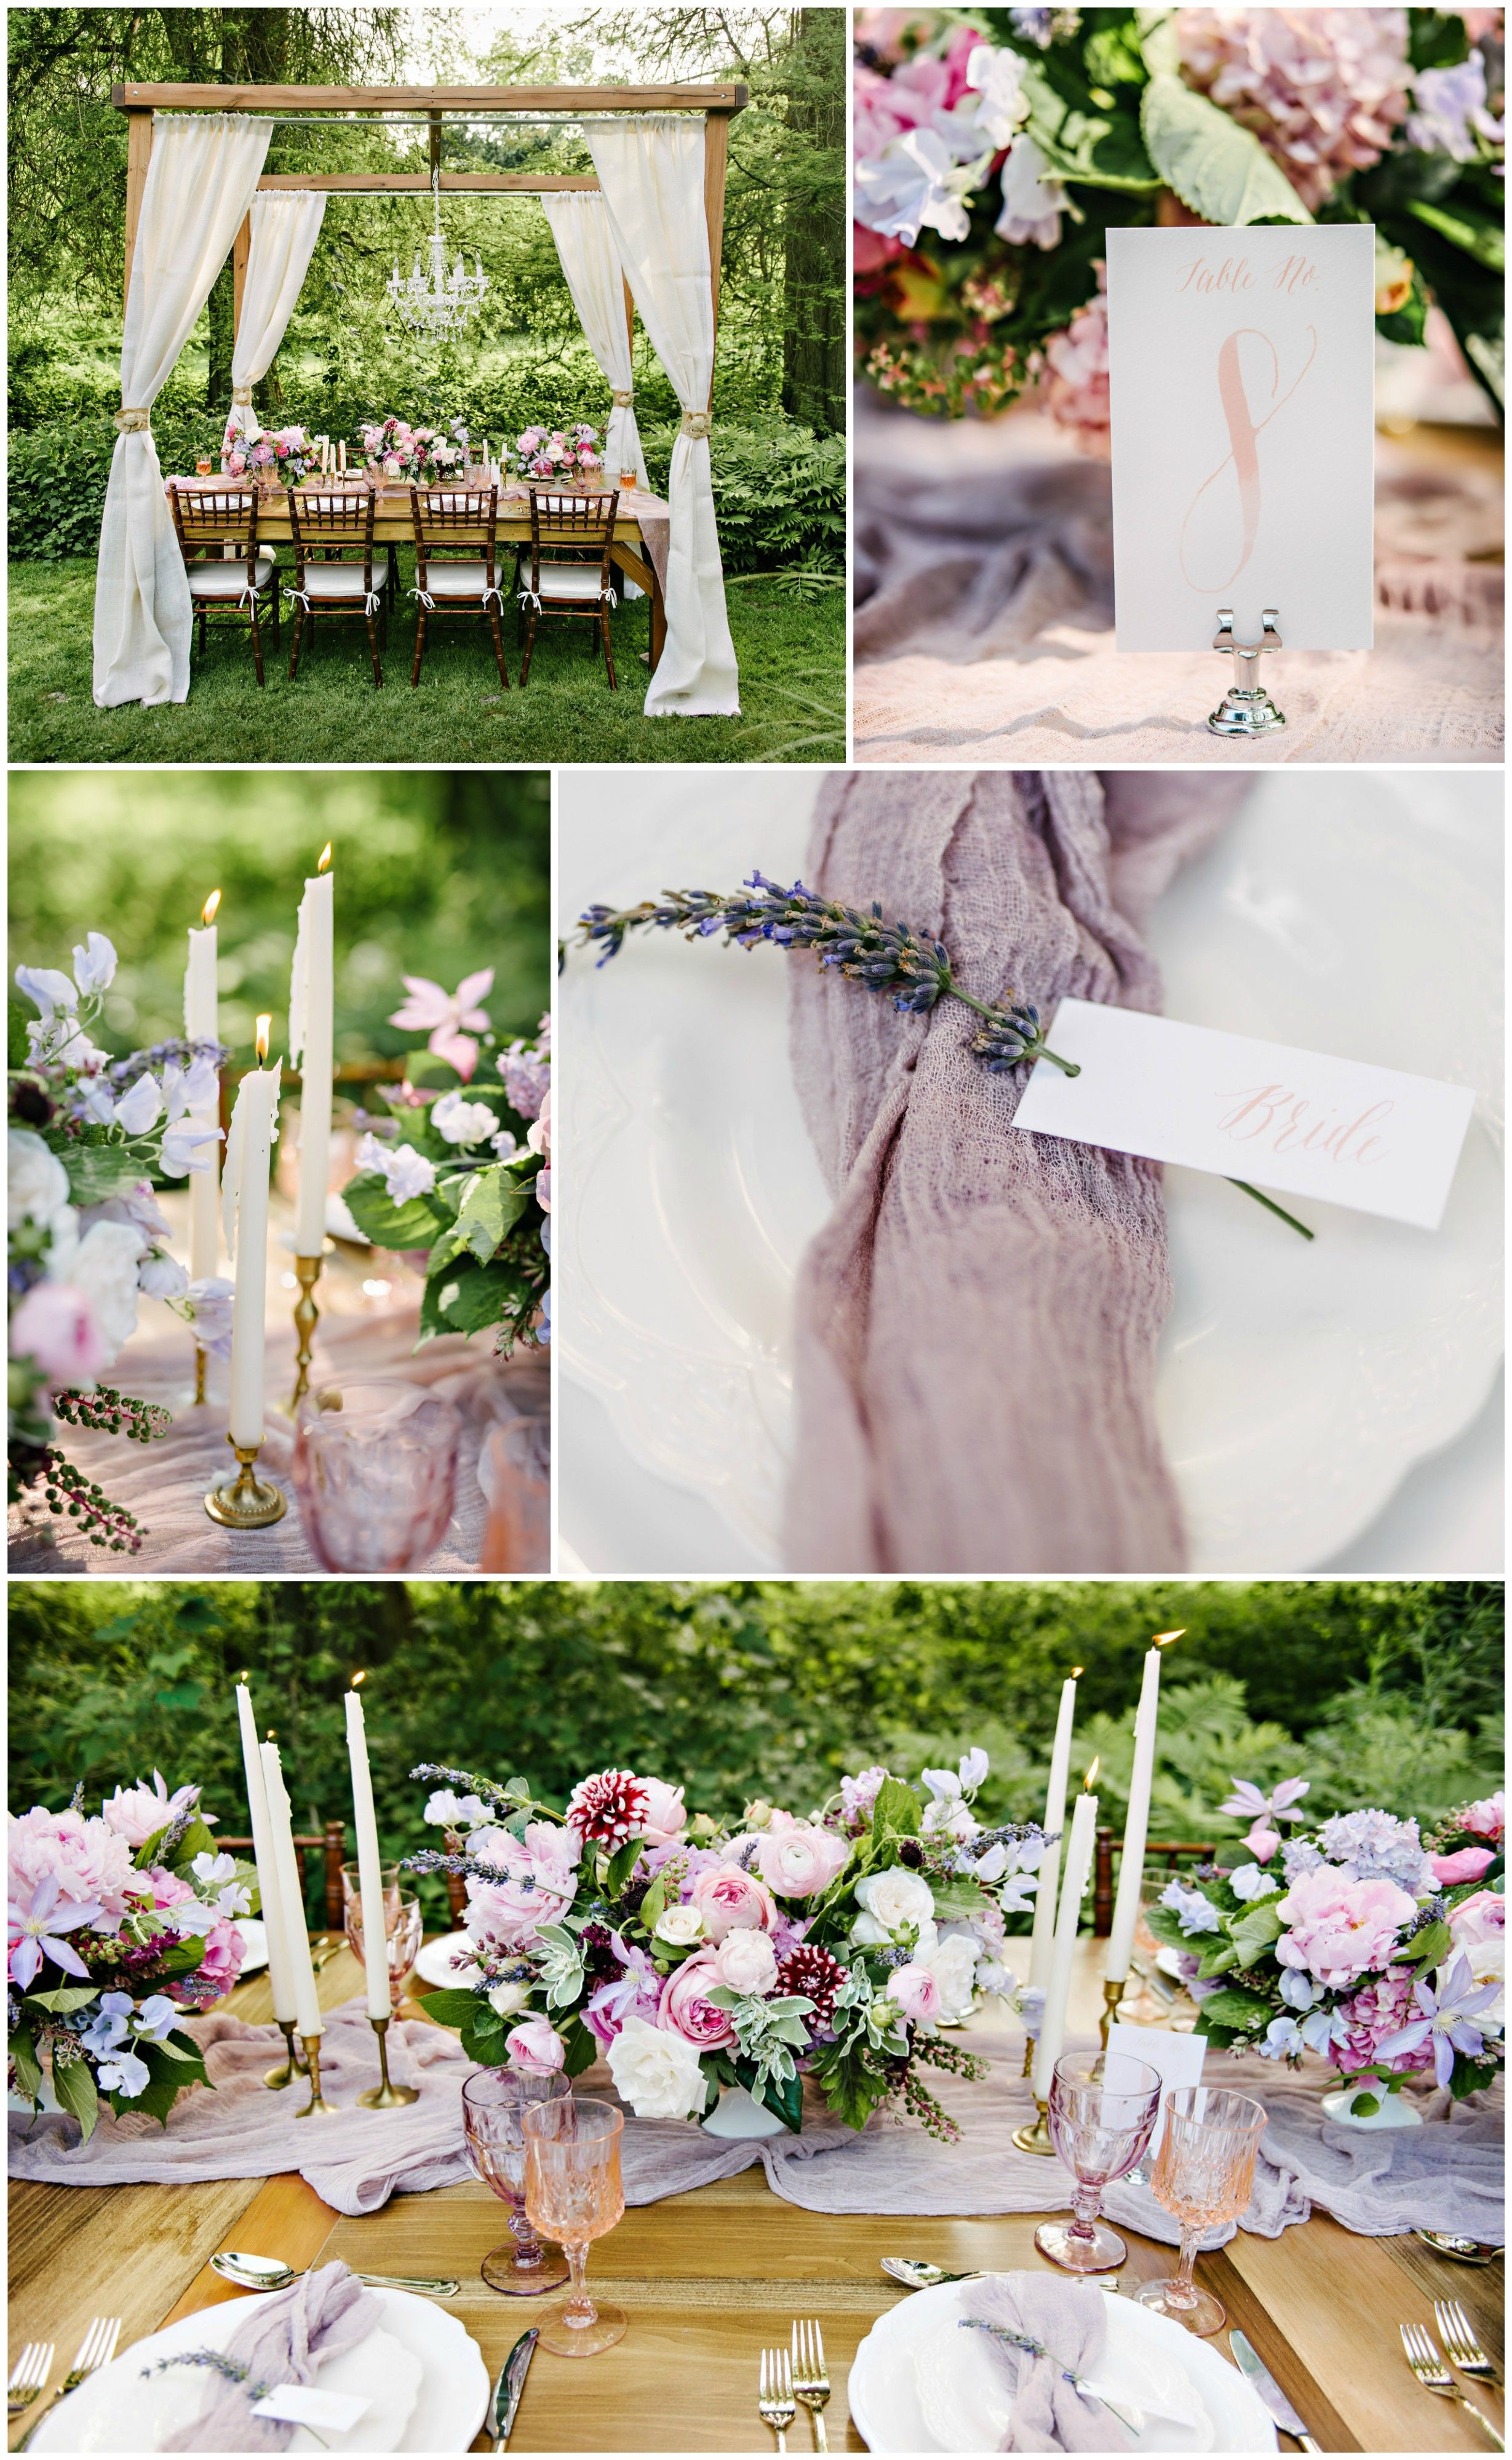 elegant decorations wedding table lights. Romantic Garden Wedding Reception, Light Pink And Pastel Blue Floral Centerpieces, Crystal Chandeliers, Elegant Decorations Table Lights O